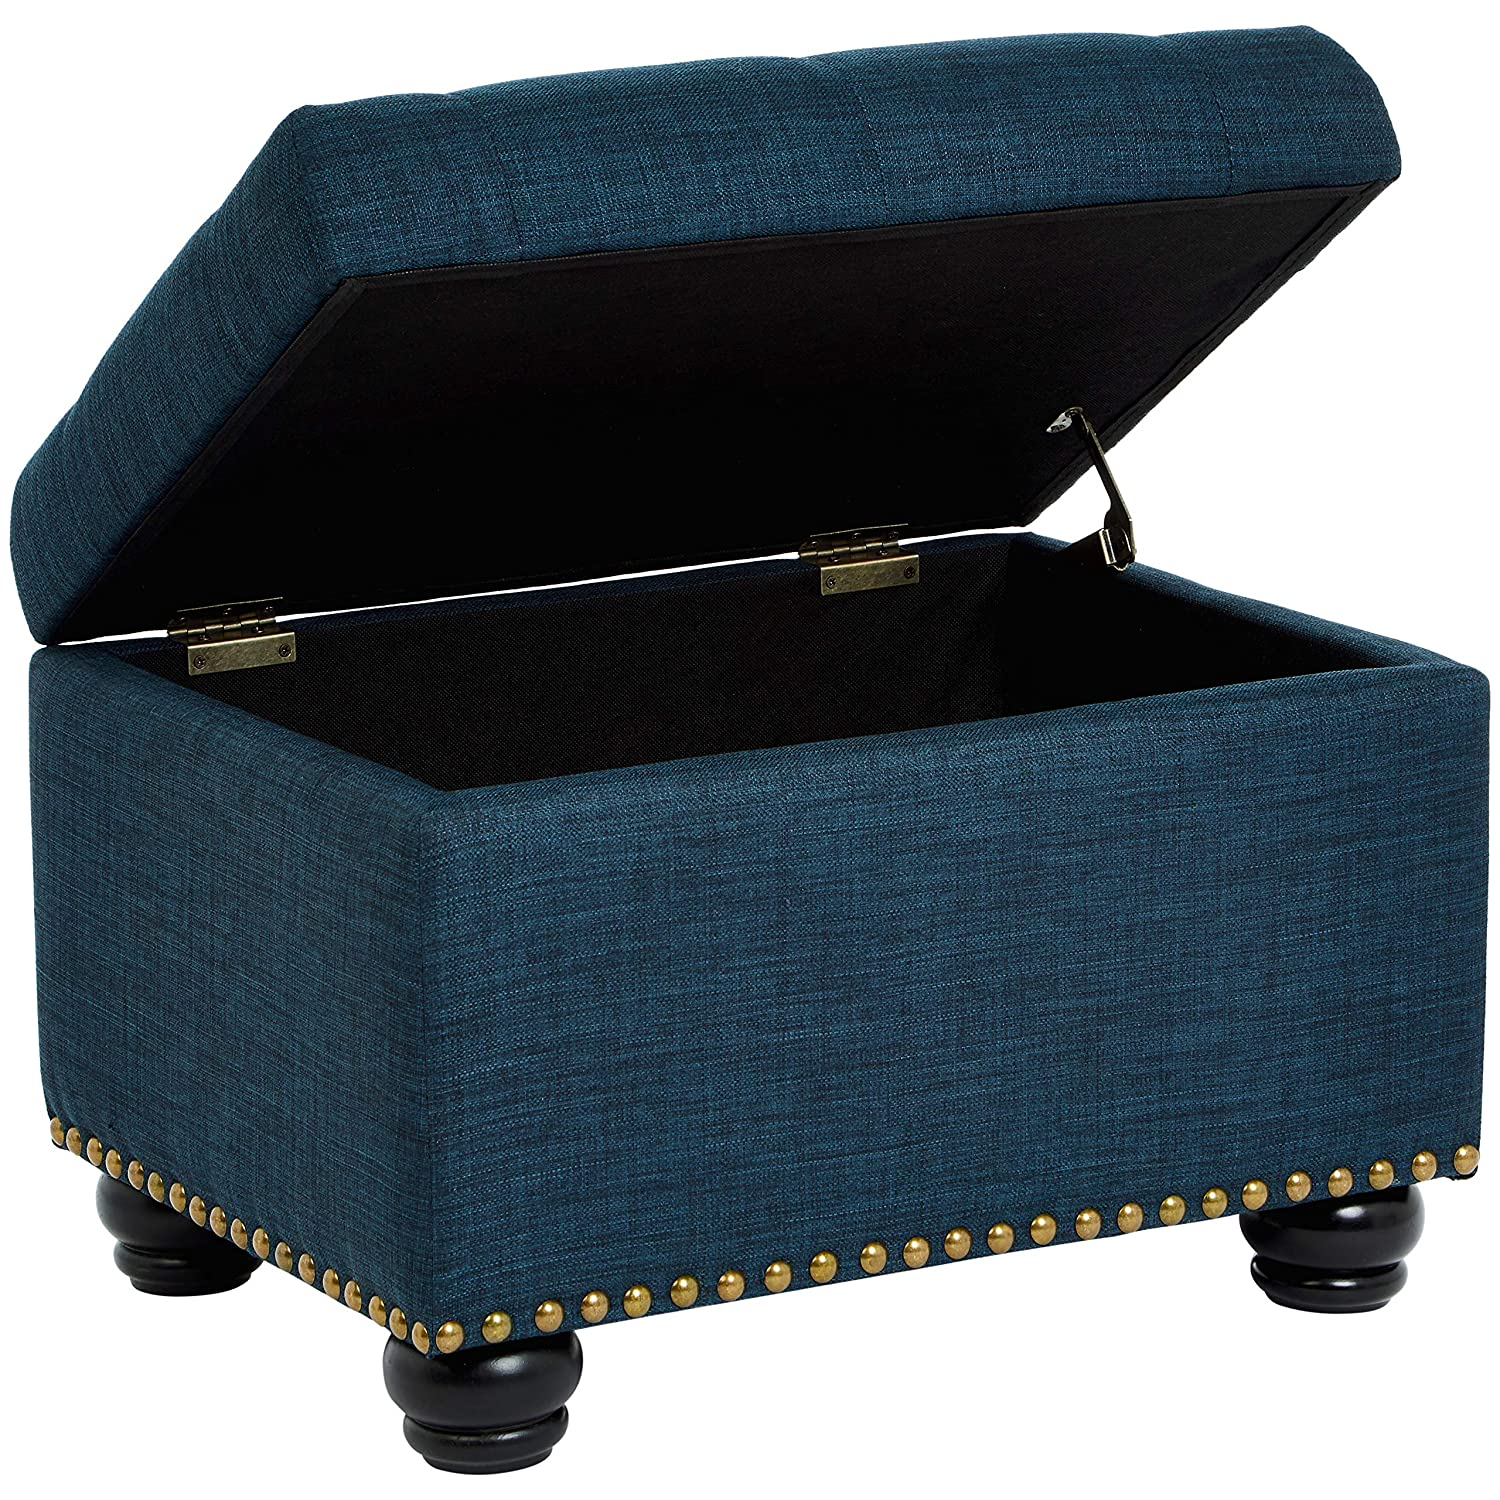 First Hill Callah Rectangular Storage Ottoman with Tufted Fabric Upholstery, Victorian Blue